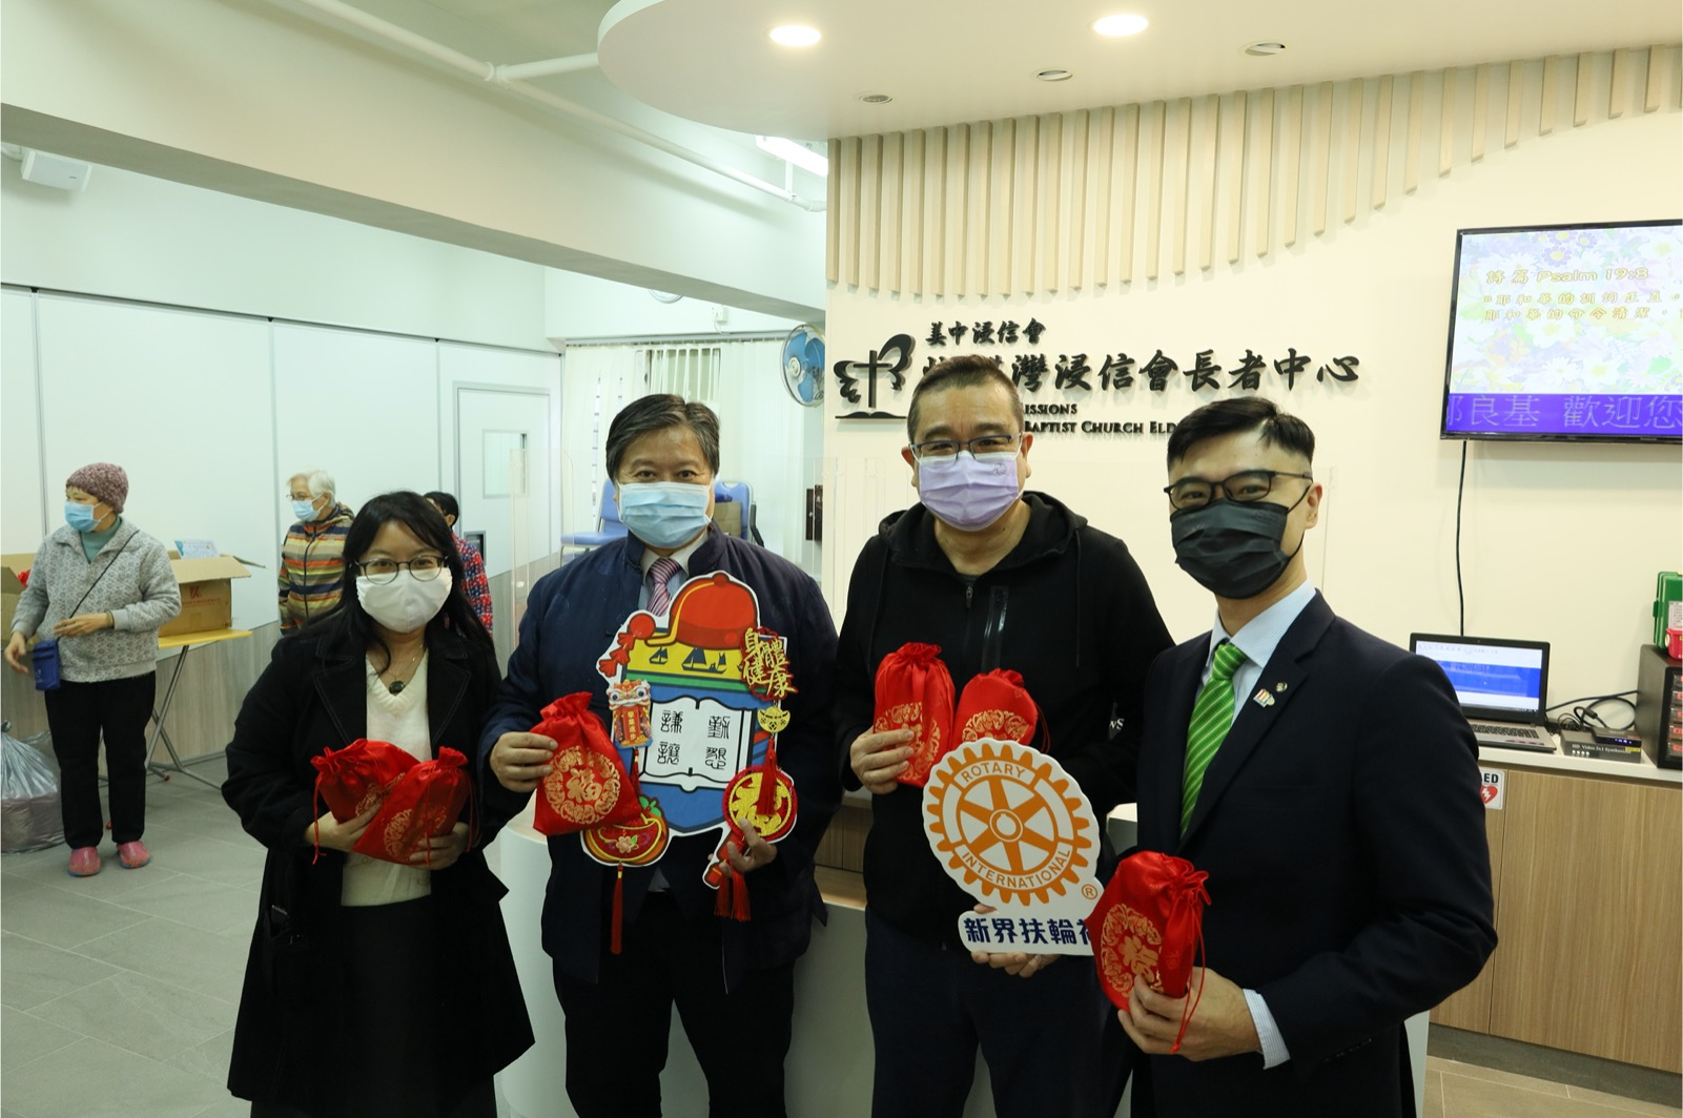 Rotary Club of New Territories' Rotary Adopt A School (RAAS) Vocational & Community Services